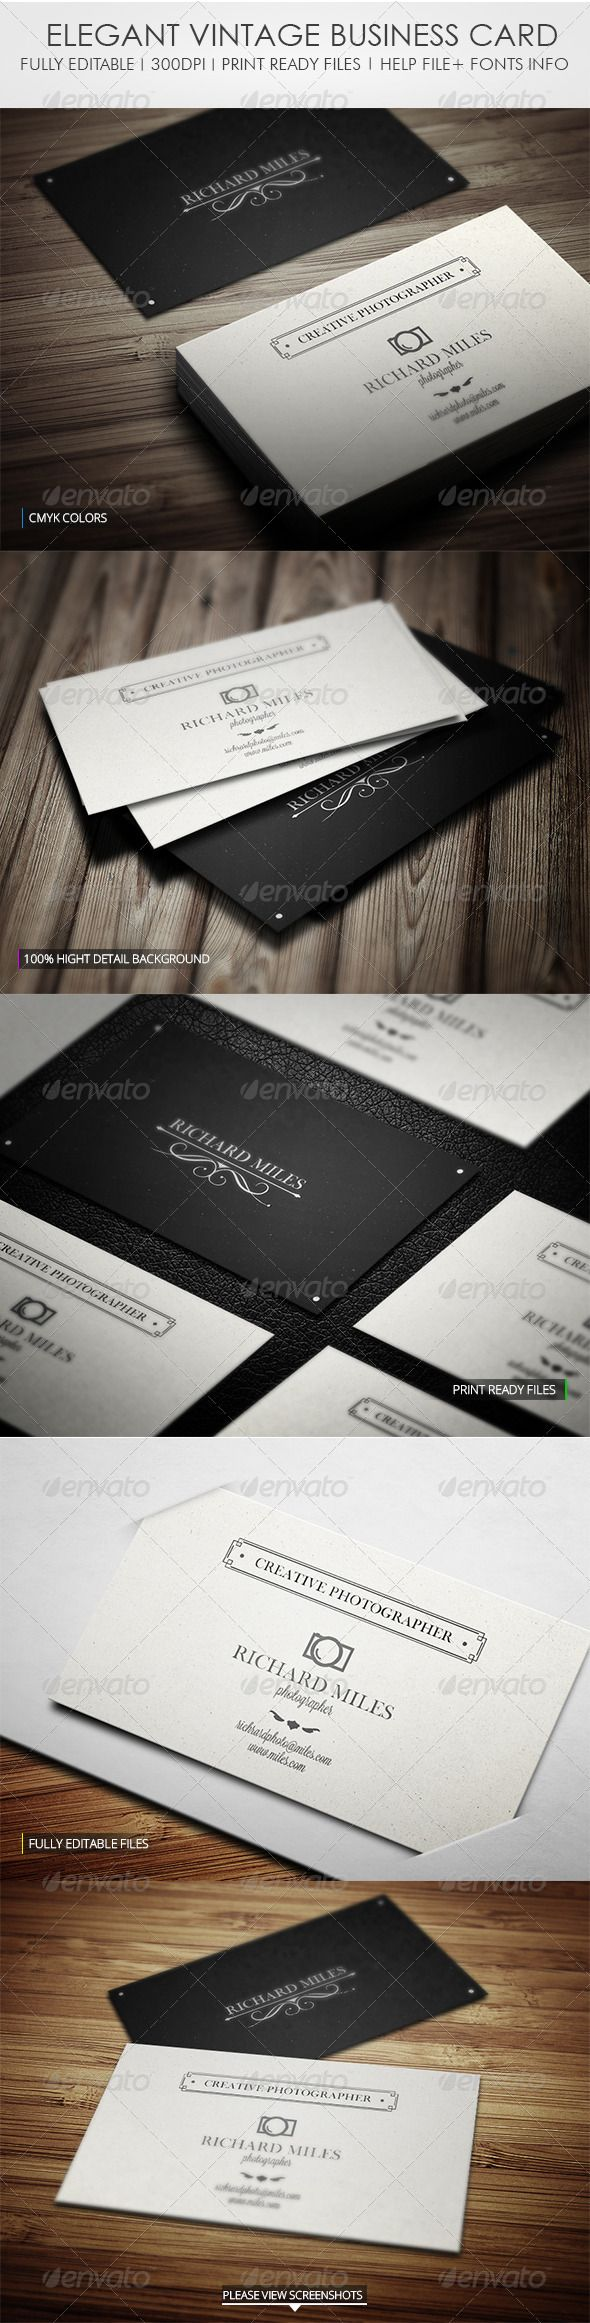 20 Best Luxurious Elegant Business Cards Images On Pinterest